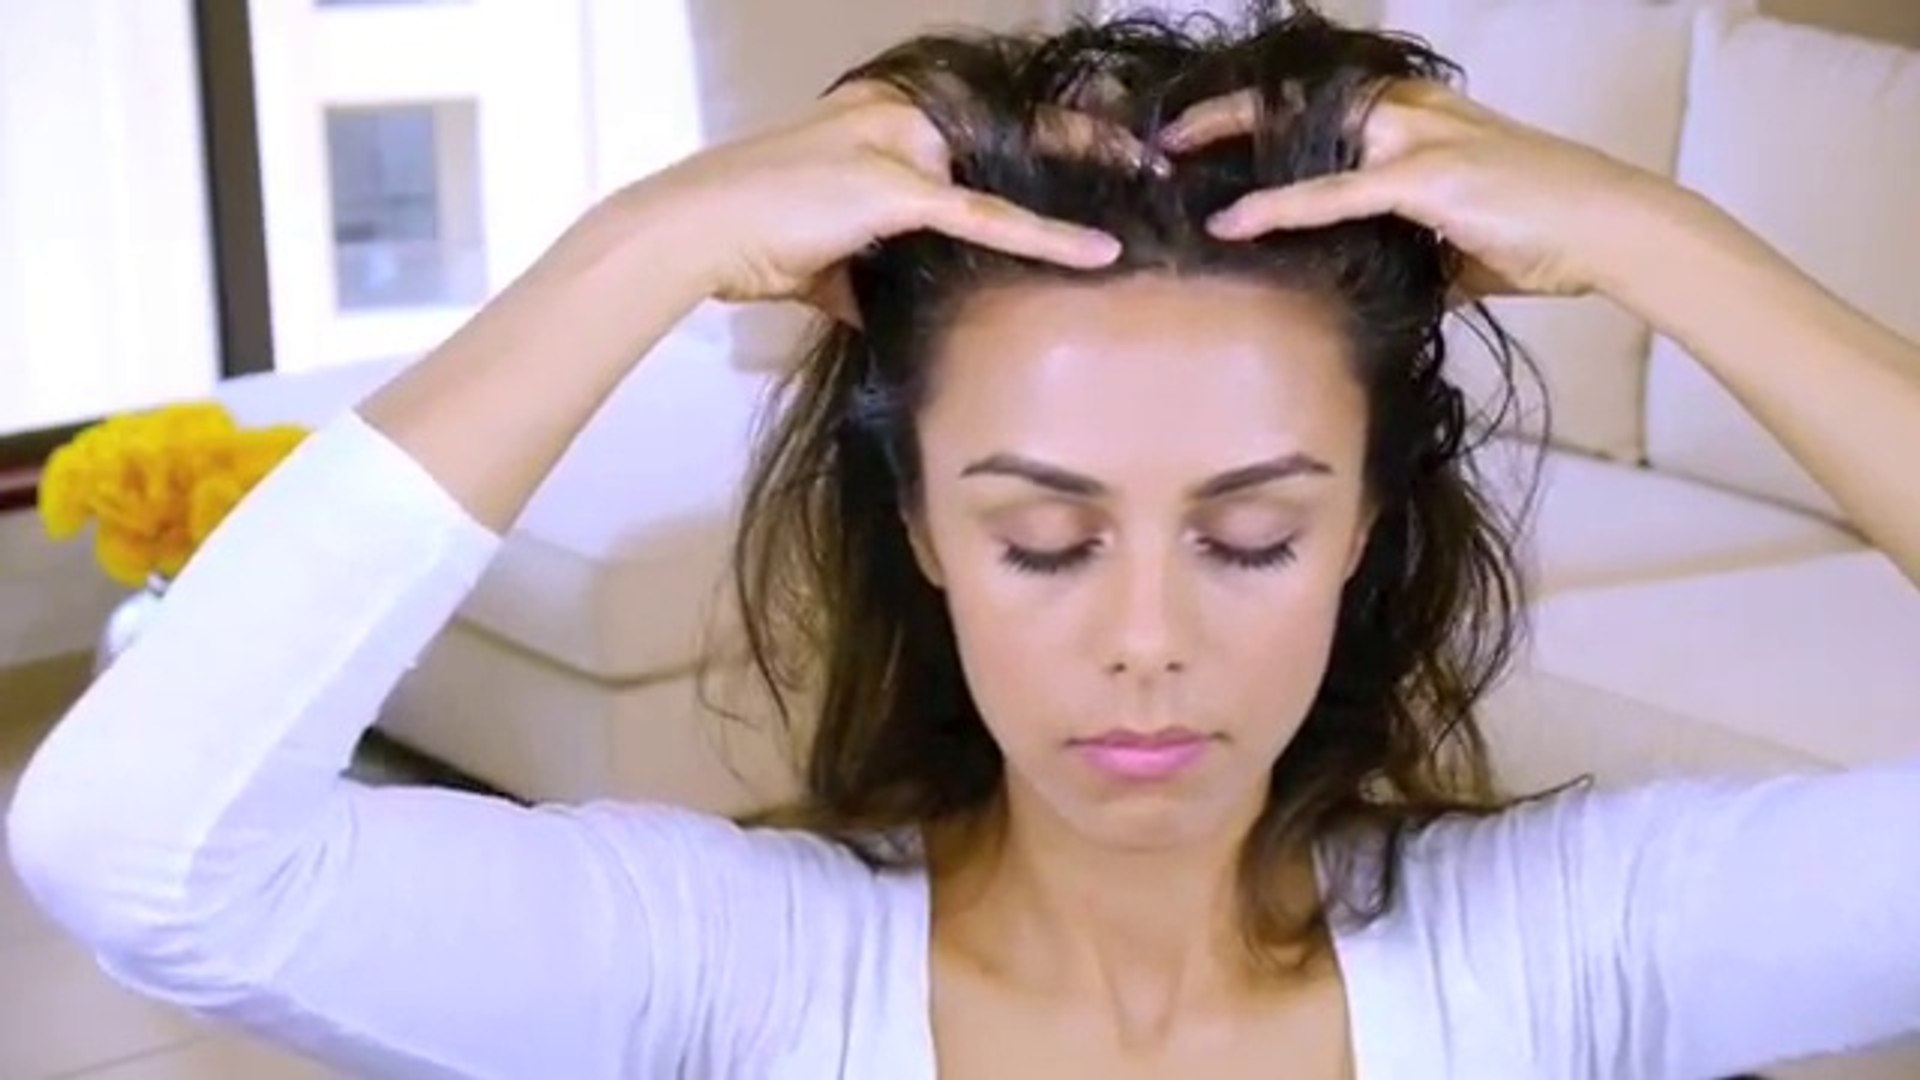 DIY Scalp Massage for Healthy Strong Hair! ♥ (Stimulates Growth & Conditions)